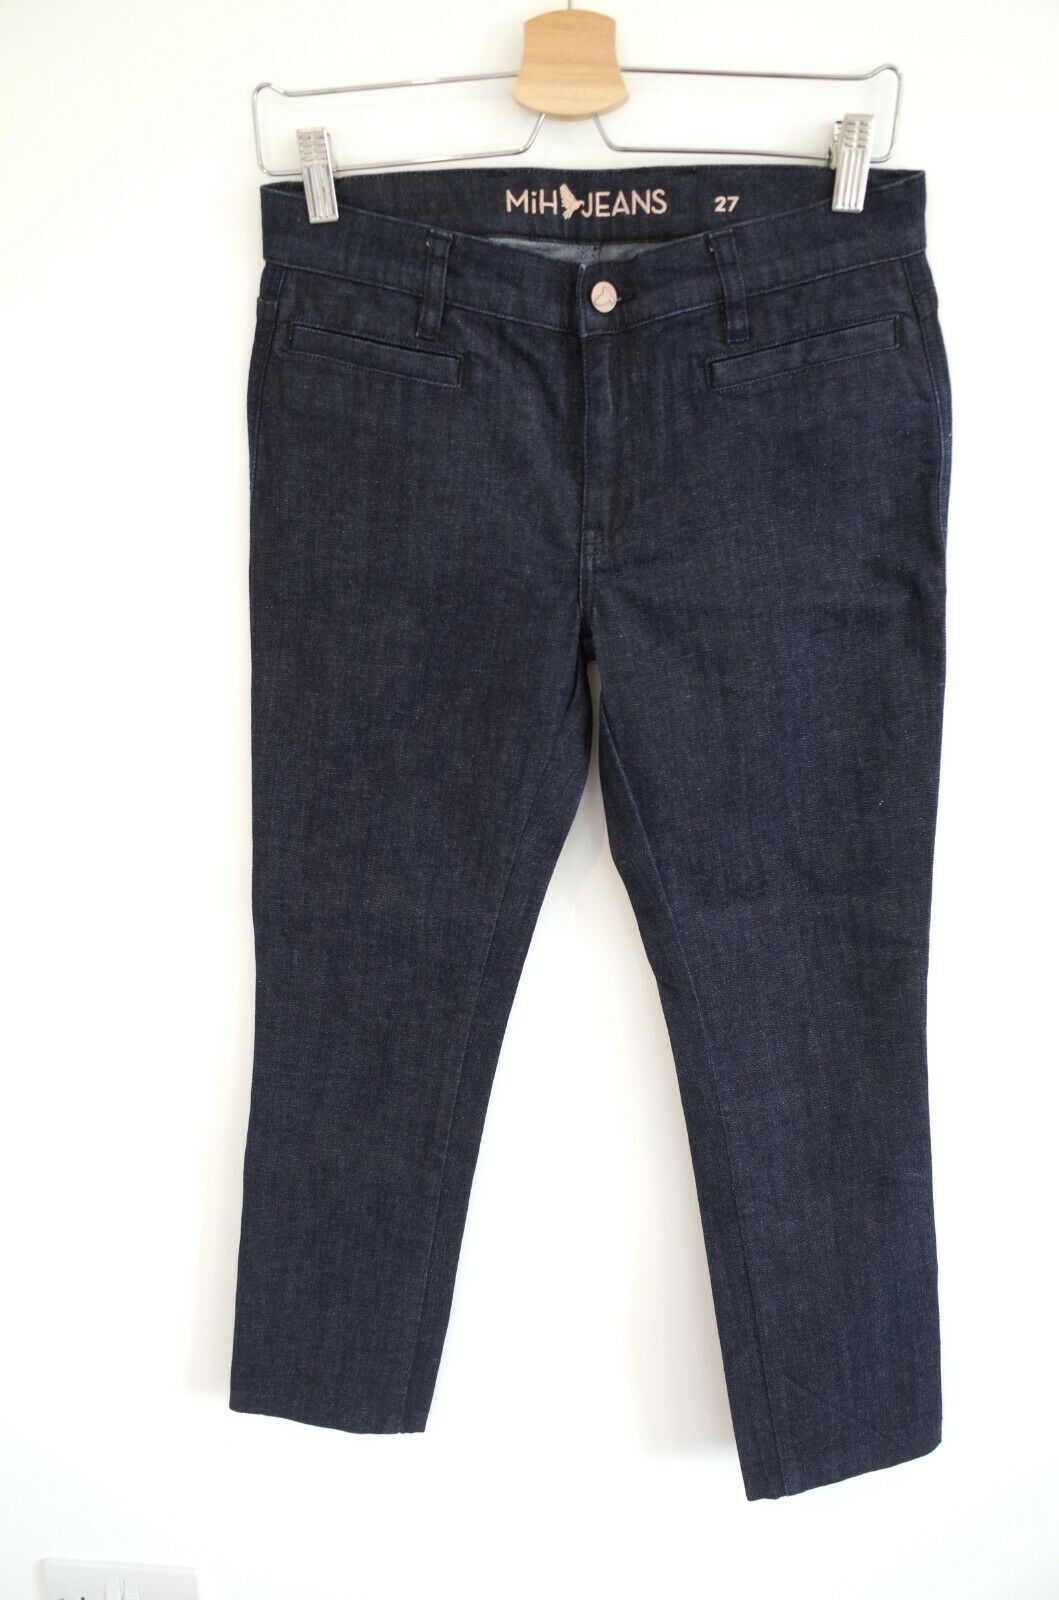 MiH Jeans Women's The Oslo Jeans Dark Raw Wash, 27  Waist Small RRP